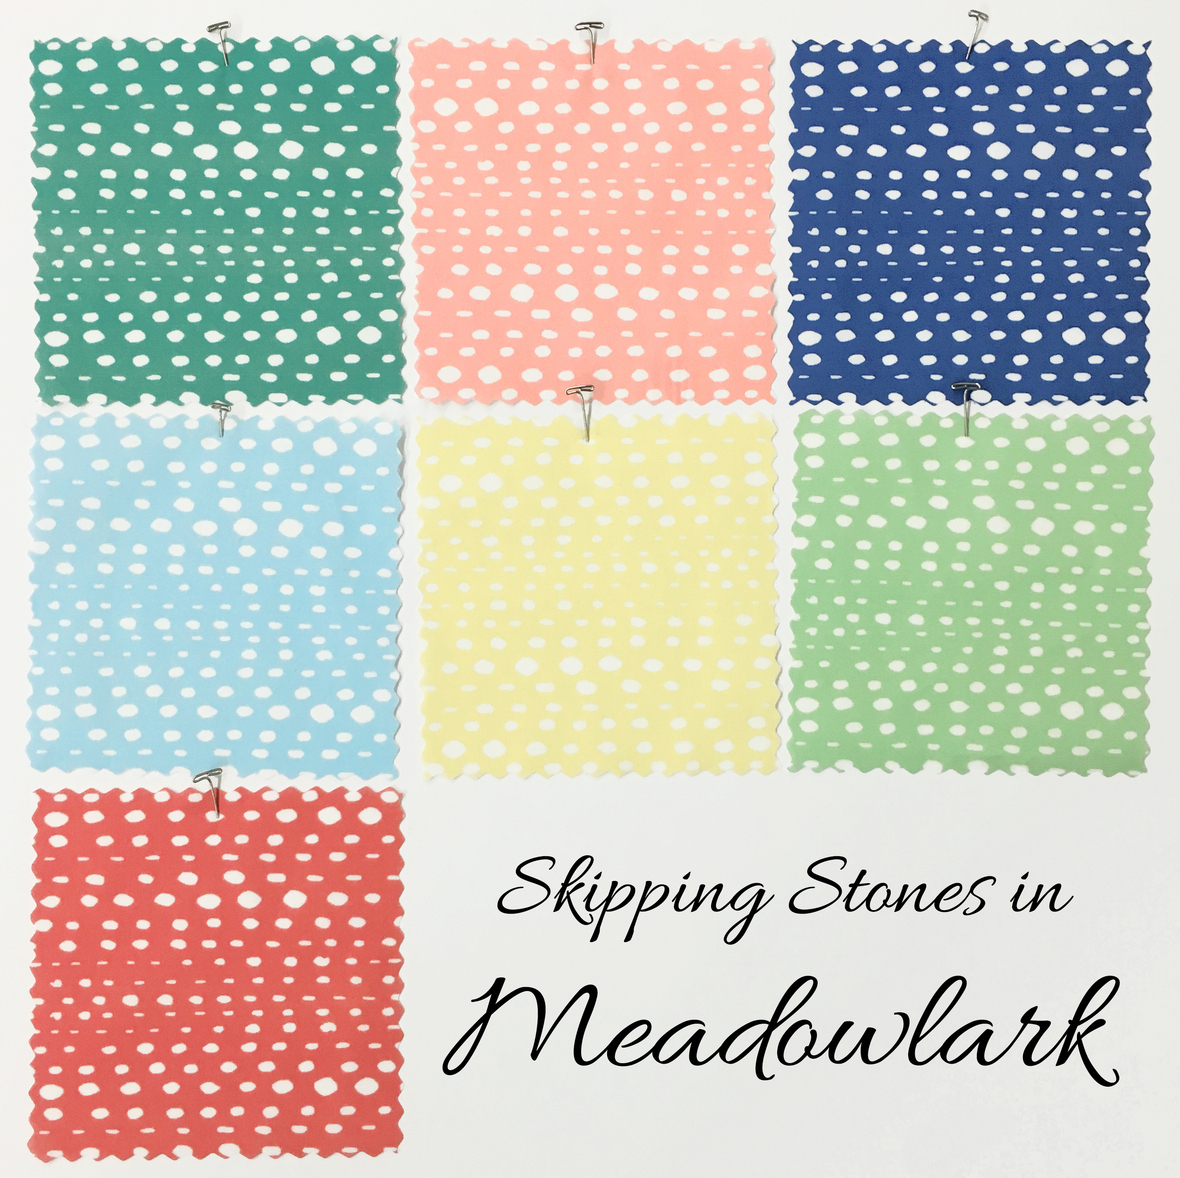 Stepping Stones in Meadowlark